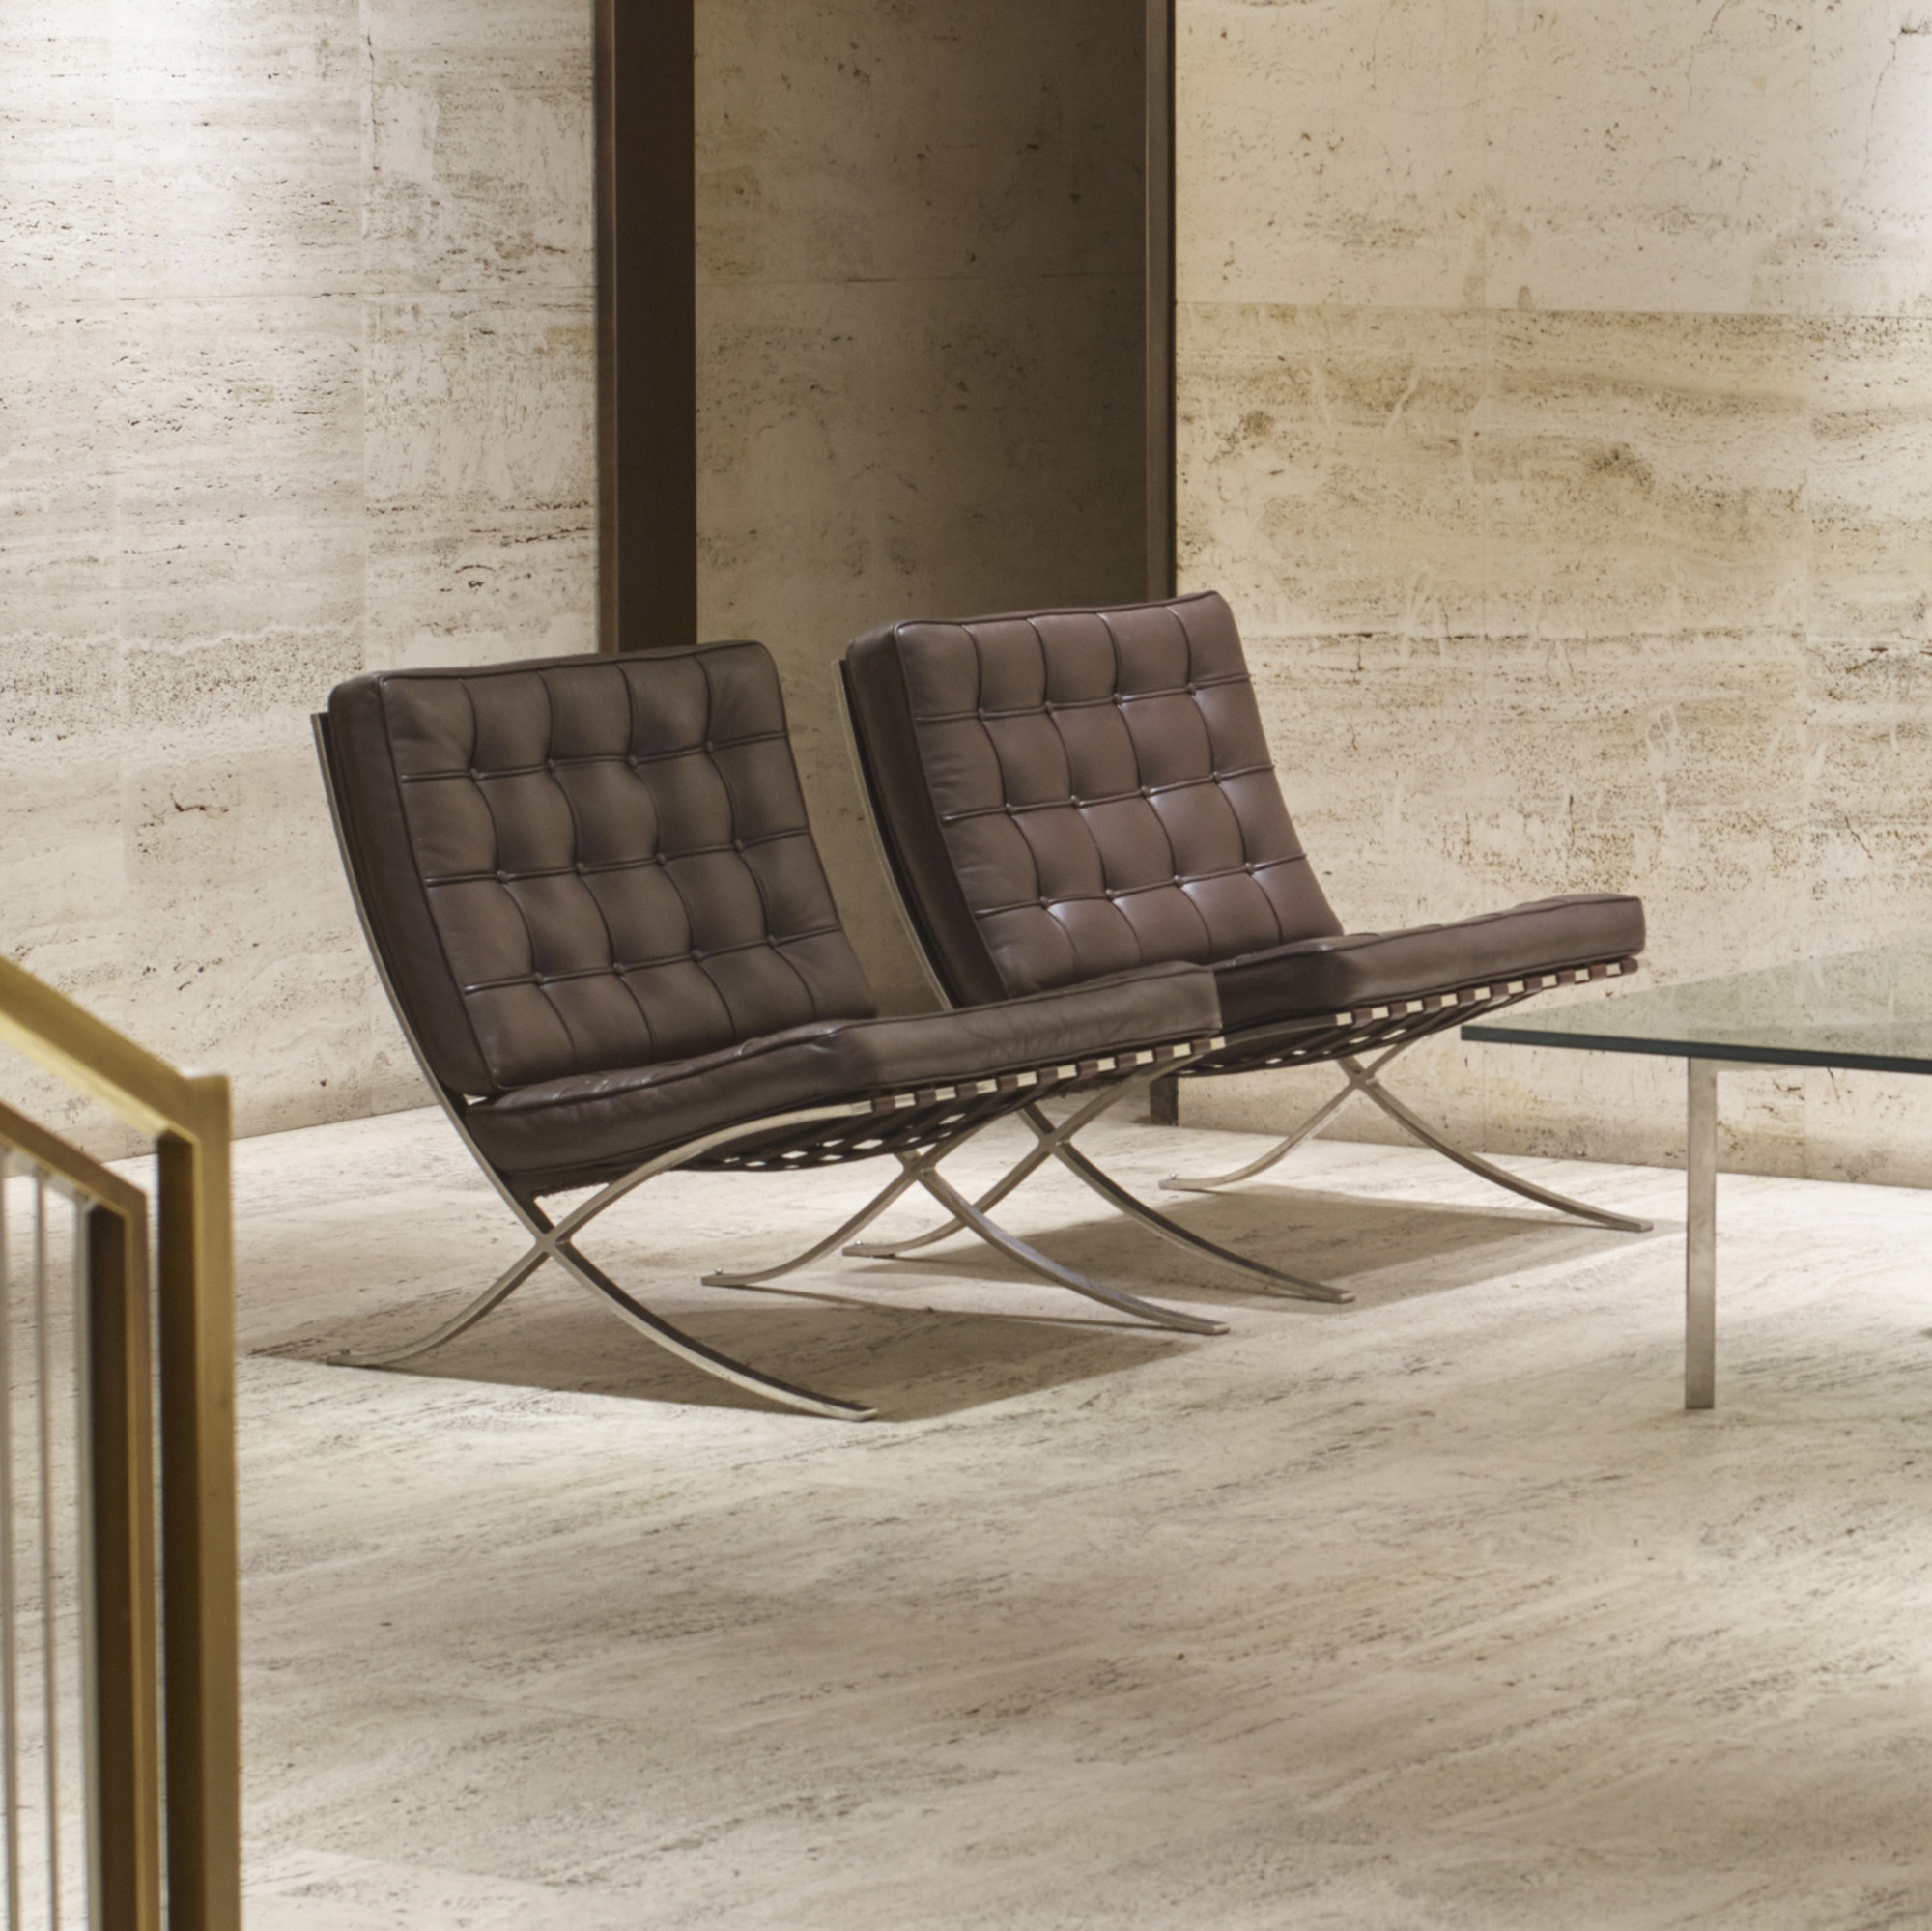 101: Ludwig Mies Van Der Rohe / Barcelona Chairs From The Entrance Lobby Of  The